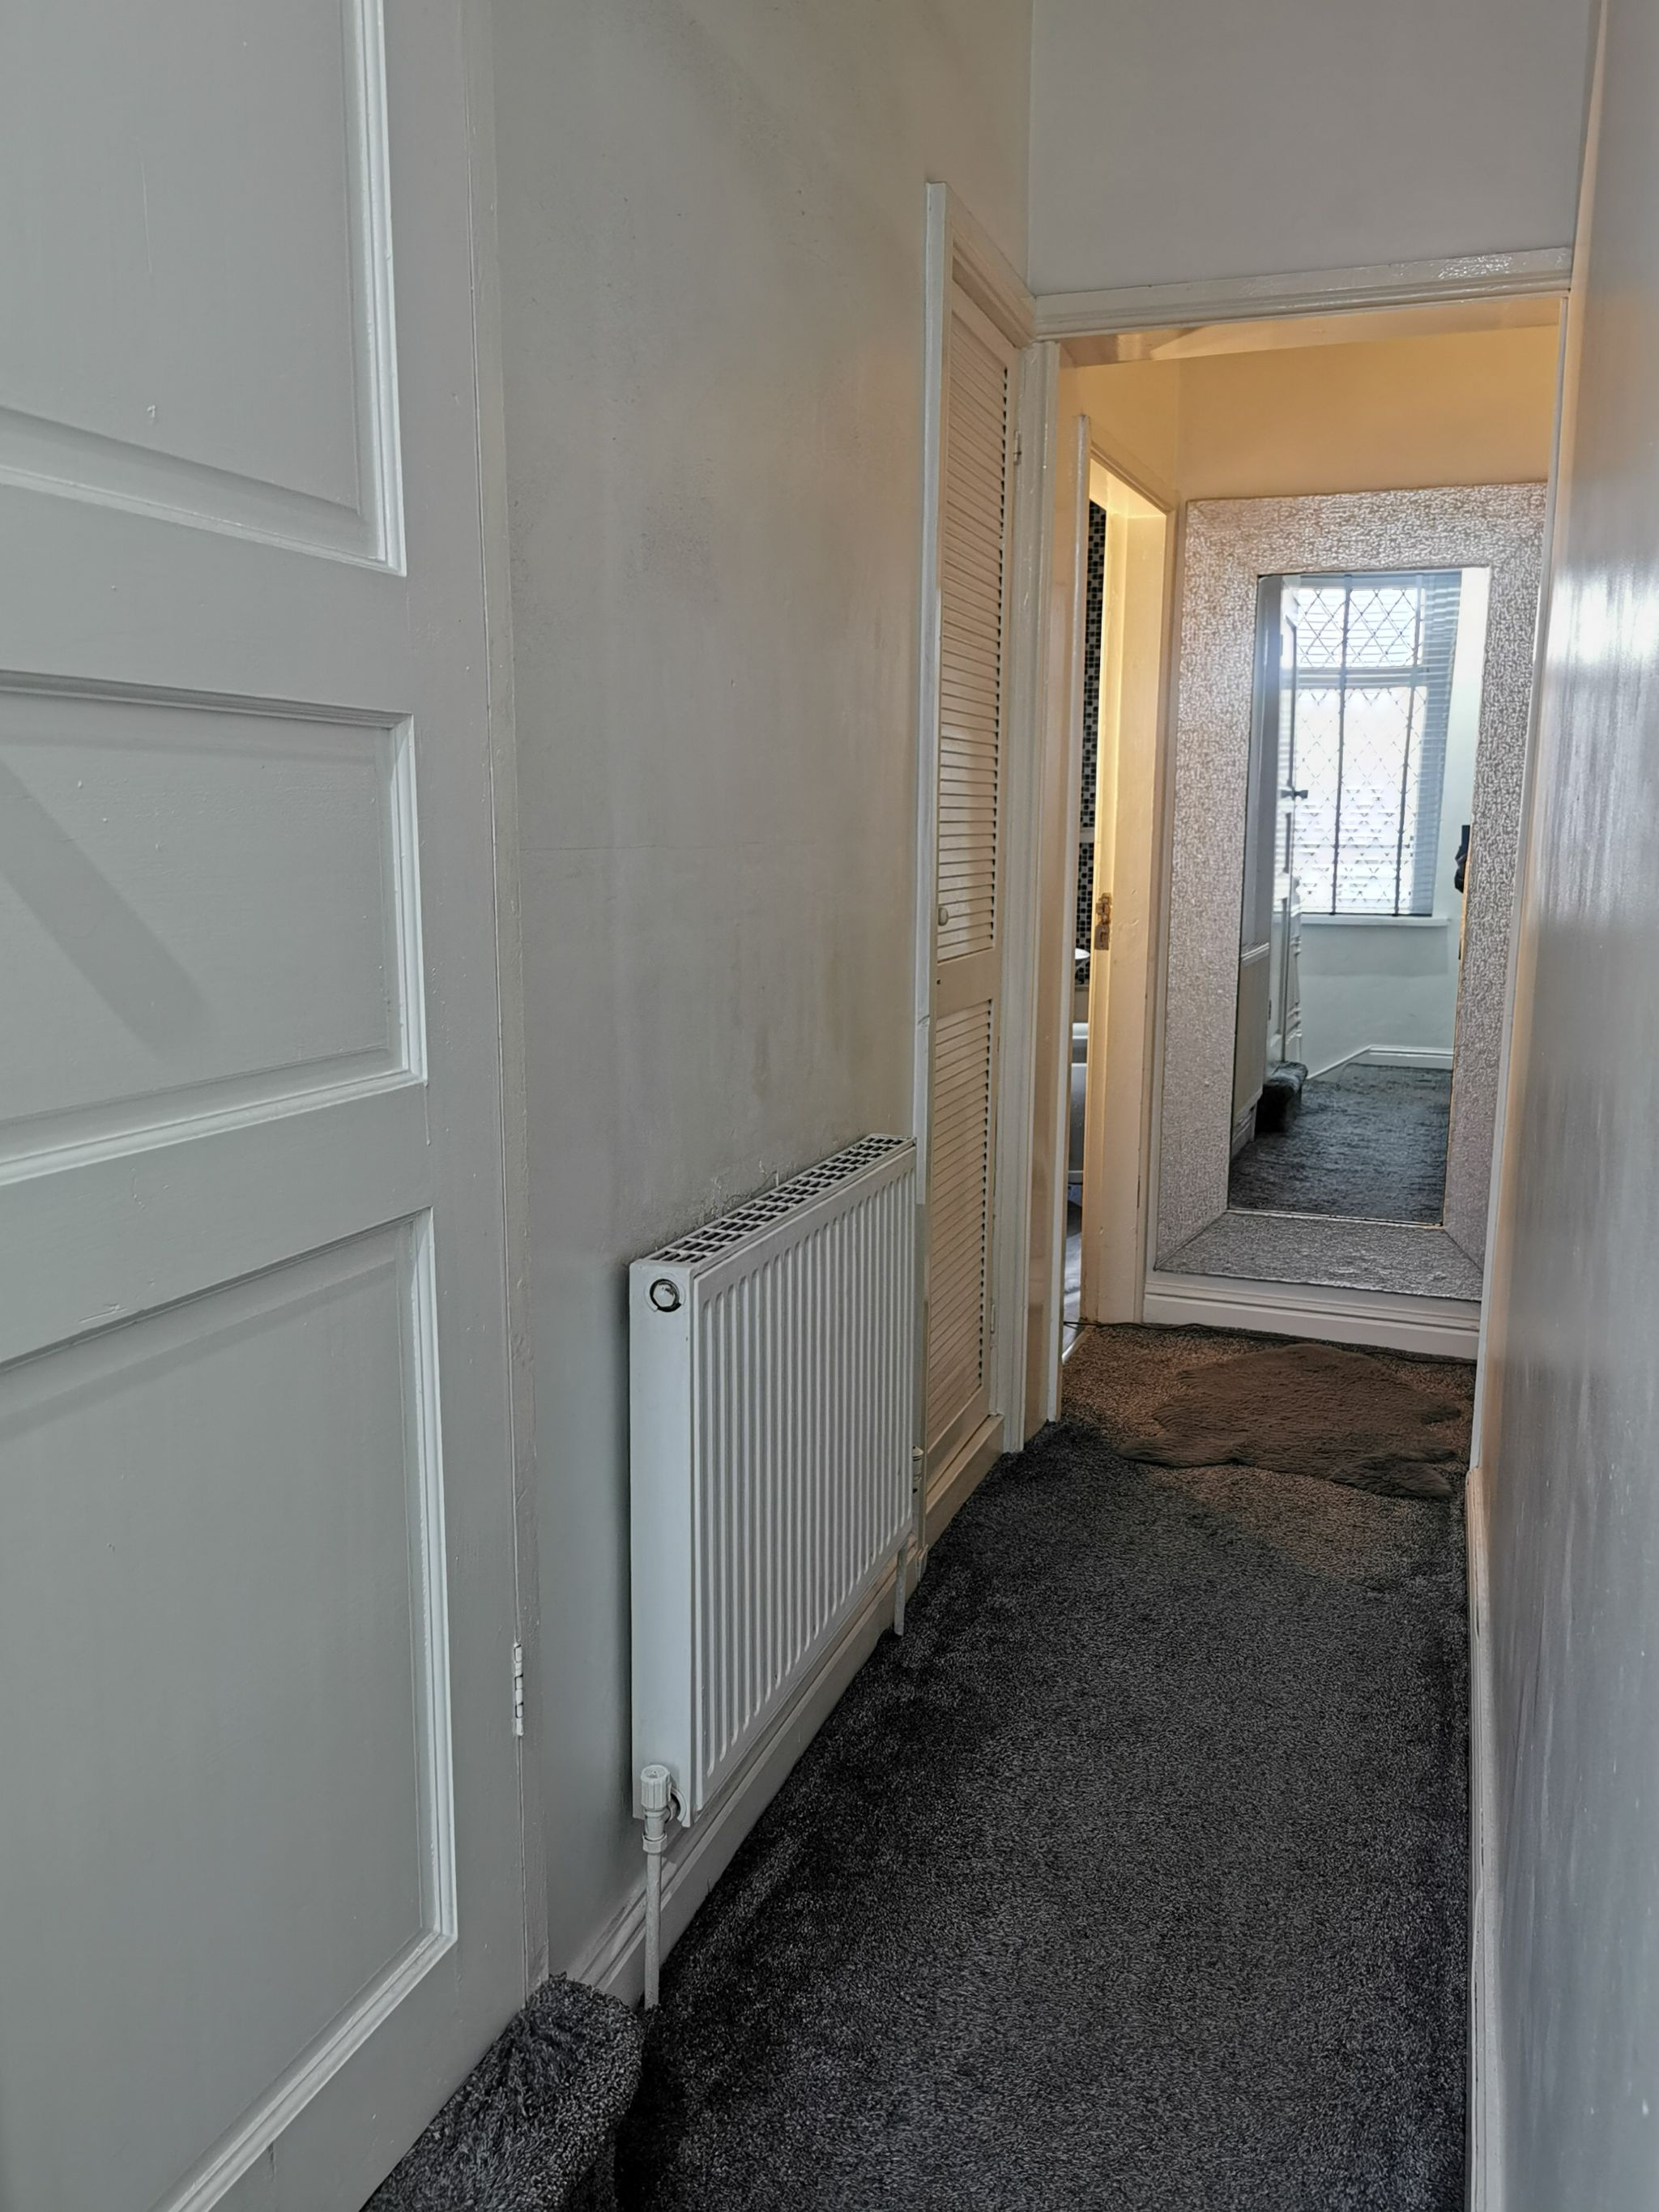 4 bedroom mid terraced house For Sale in Bradford - Photograph 12.